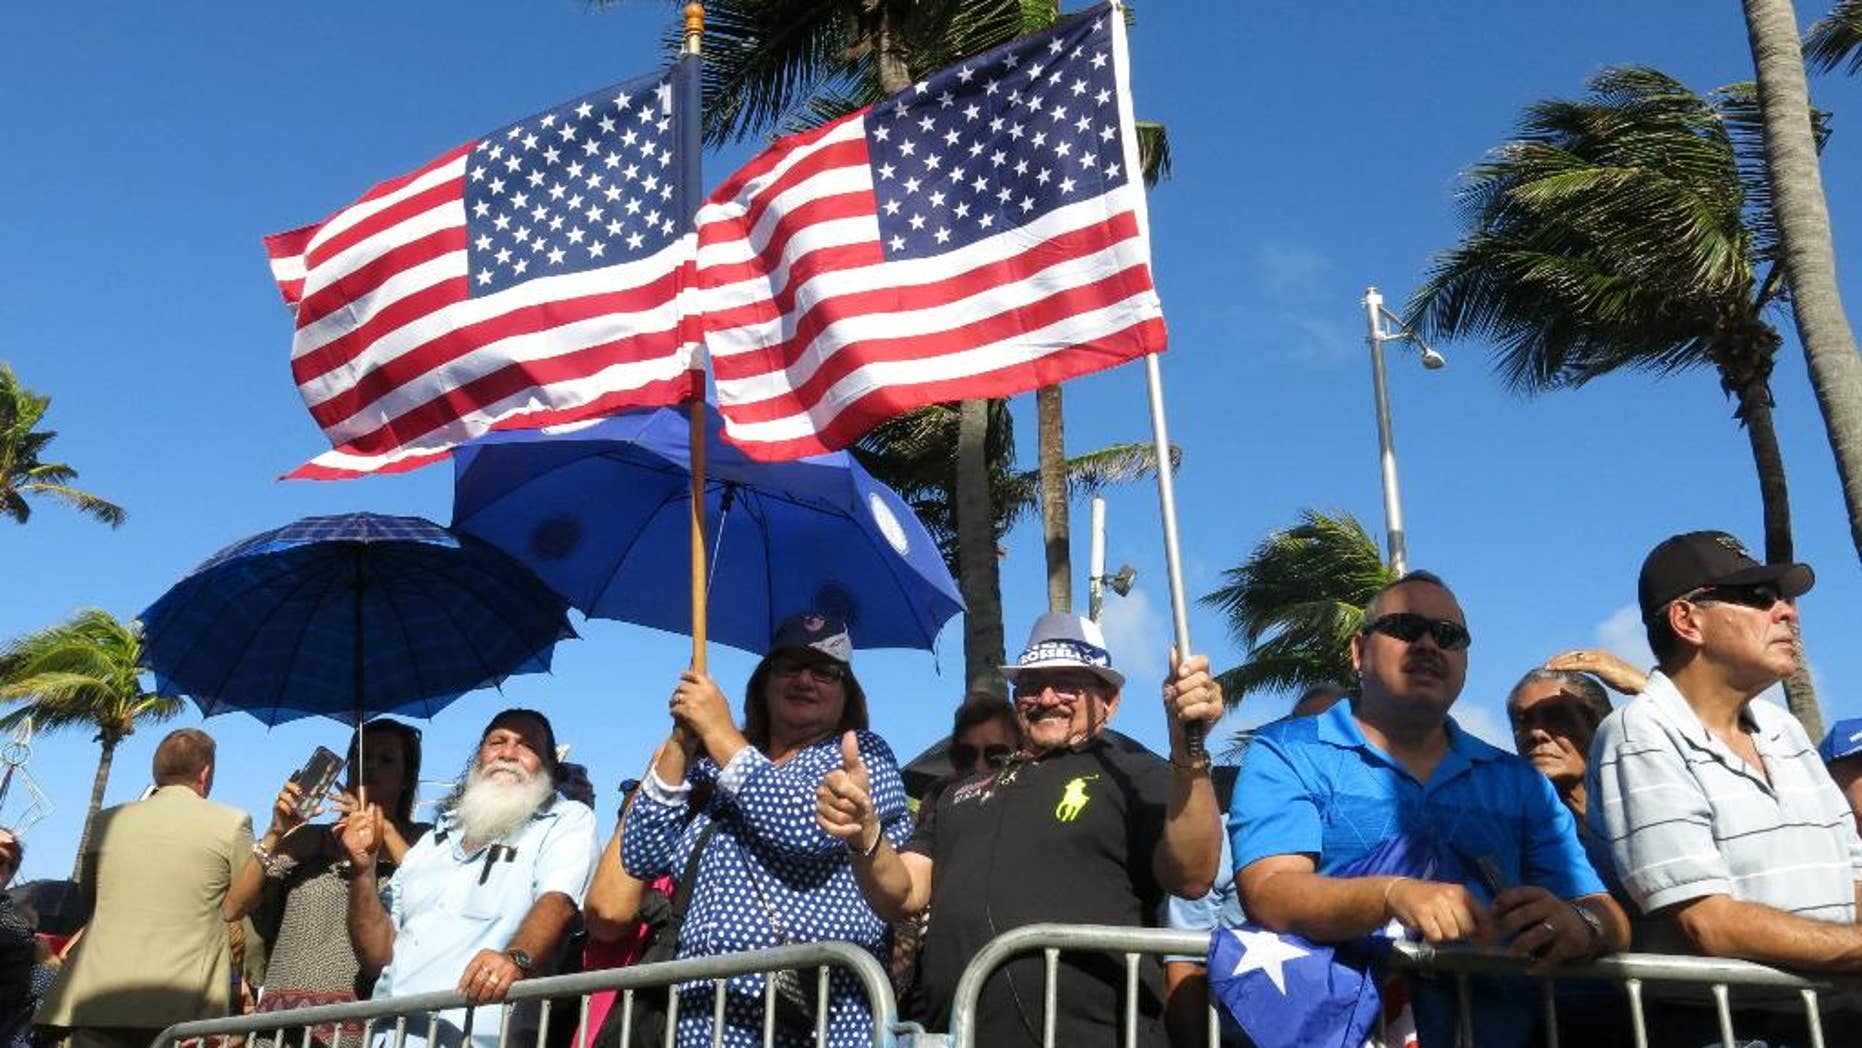 Pro-statehood supporters await the arrival of Puerto Rico's new governor at the seaside Capitol in San Juan, Puerto Rico, Monday, Jan. 2, 2017.  Ricardo Rossello was sworn in Monday as the U.S. territory prepares for what many believe will be new austerity measures and a renewed push for statehood to haul the island out of a deep economic crisis. (AP Photo/Danica Coto)